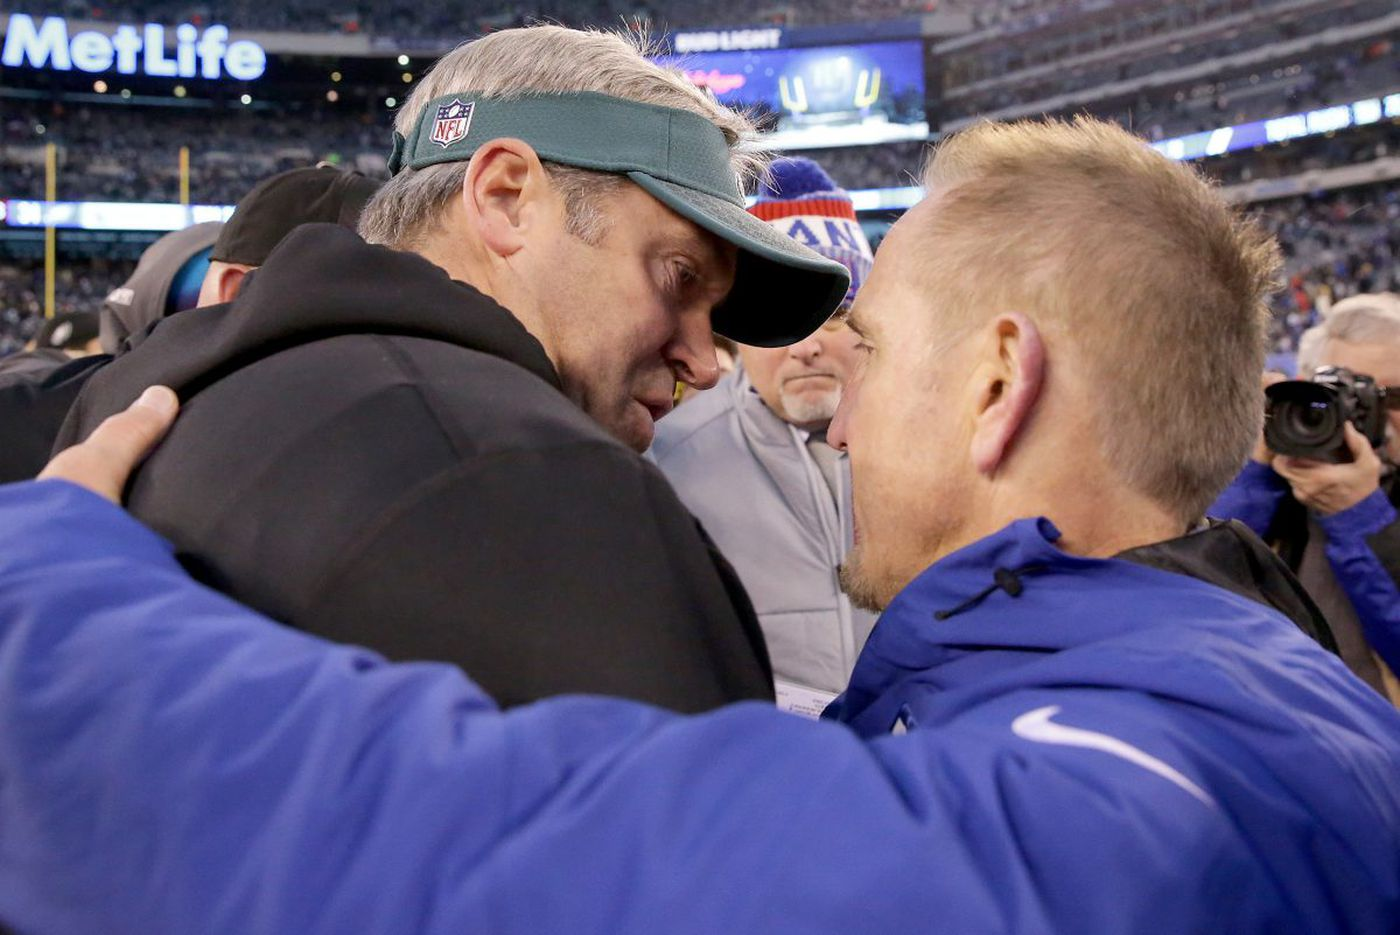 Credit Doug Pederson's play-calling and even keel for another Eagles win | David Murphy